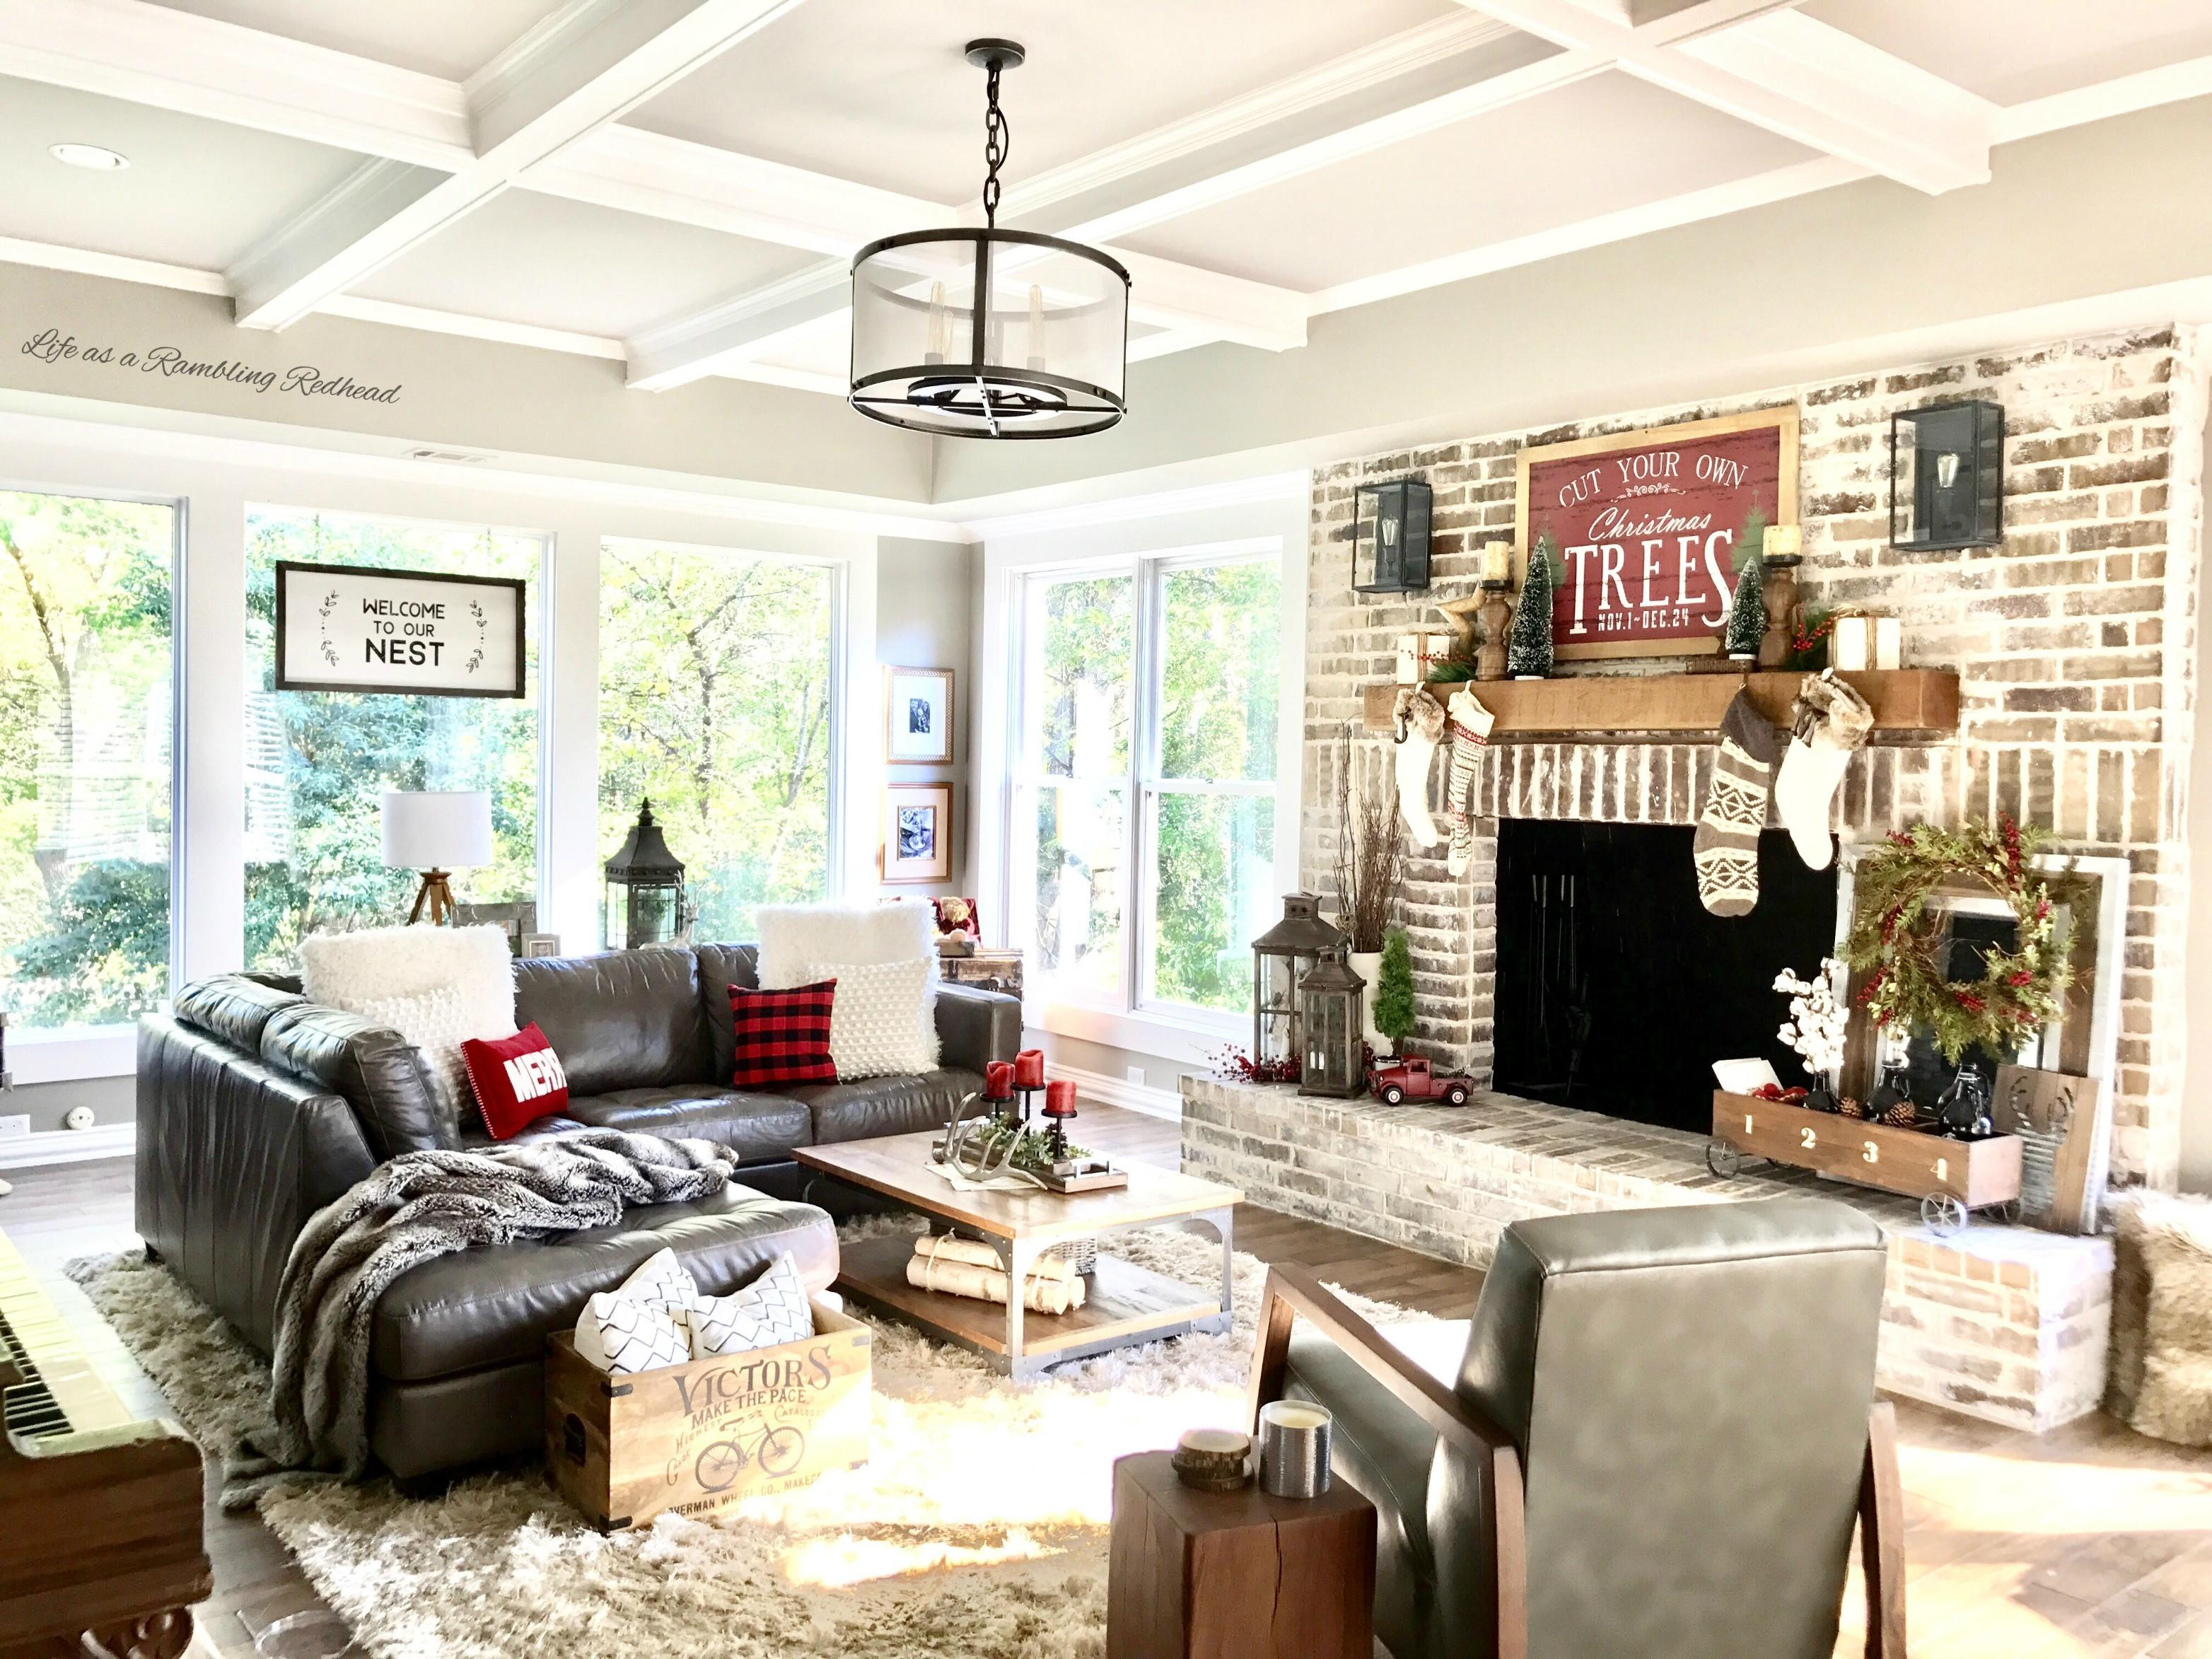 Renovated Rustic Farmhouse Holiday Home Tour